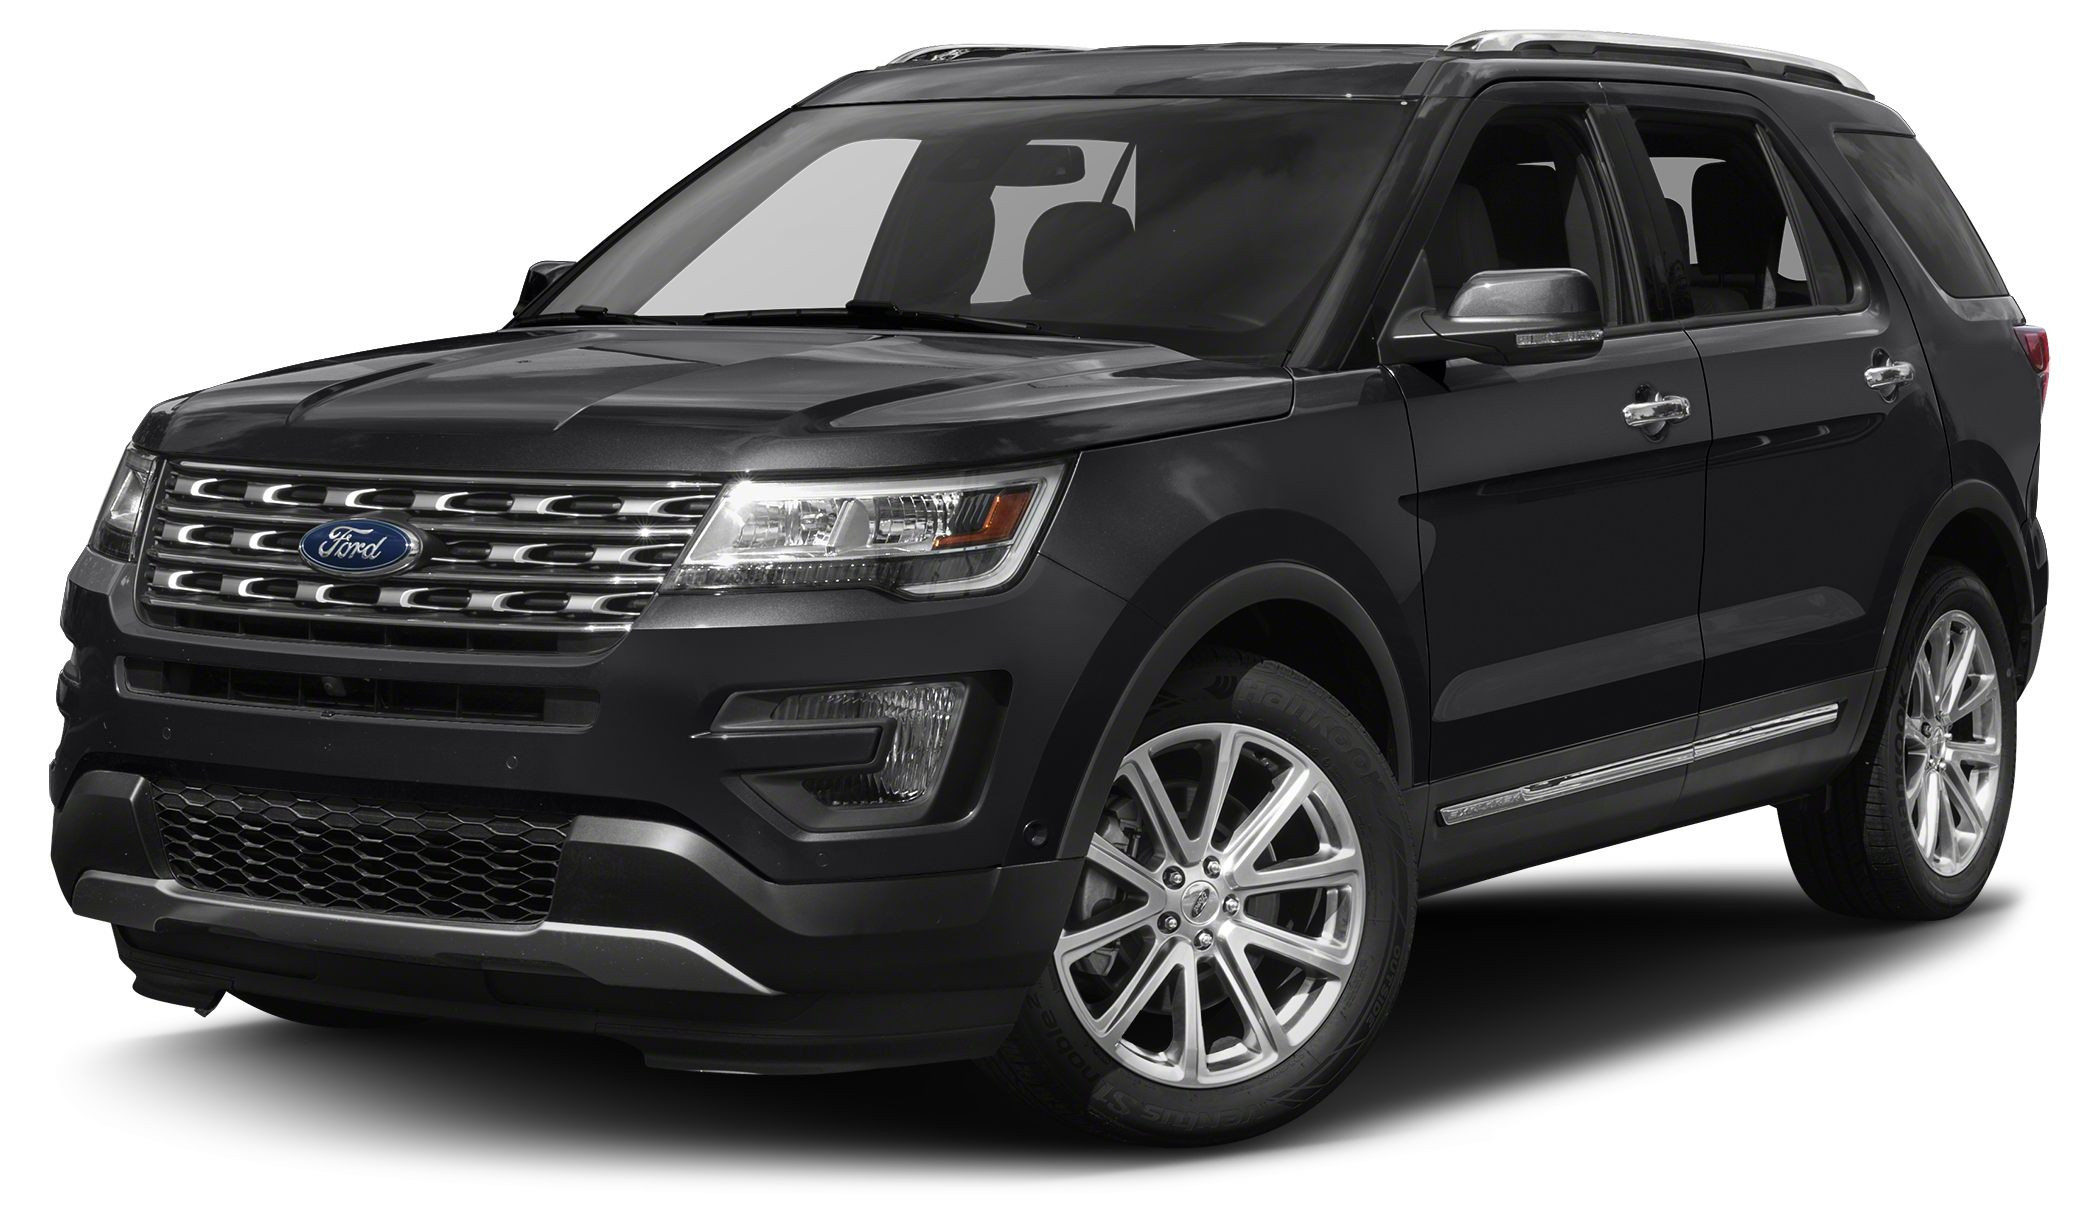 2017 Ford Explorer Limited Price includes 4500 - Retail Customer Cash Exp 10312017 1000